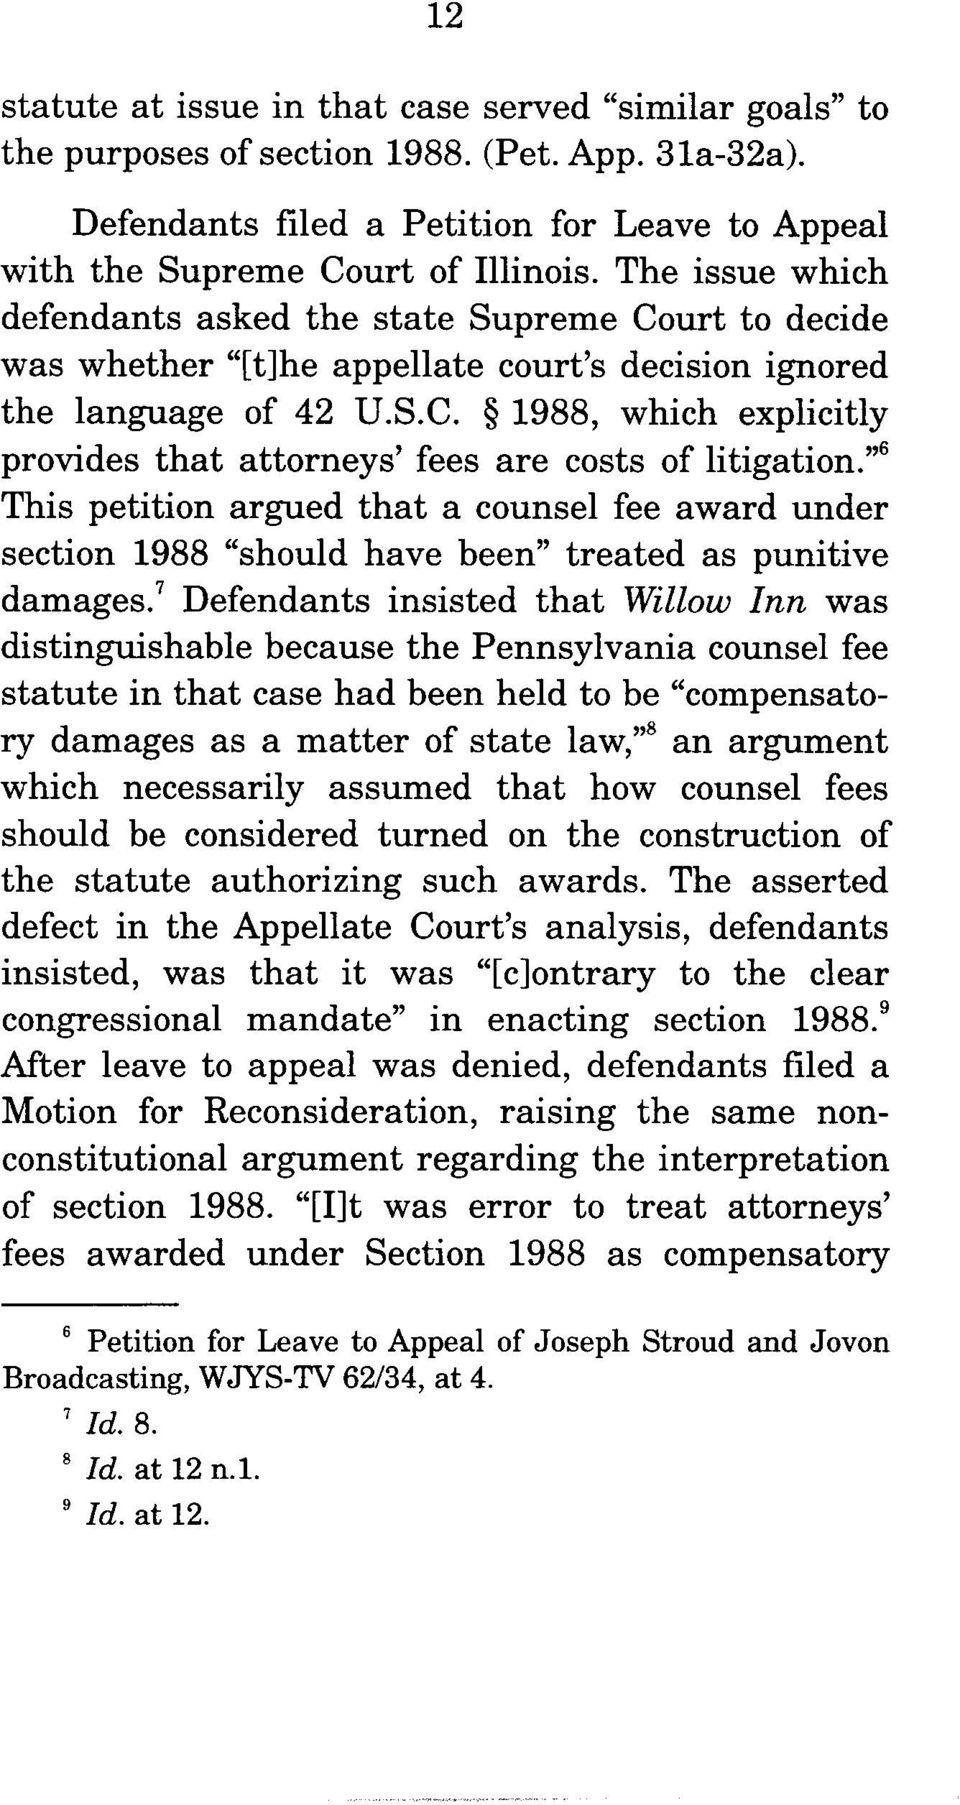 """6 This petition argued that a counsel fee award under section 1988 ""should have been"" treated as punitive damages."